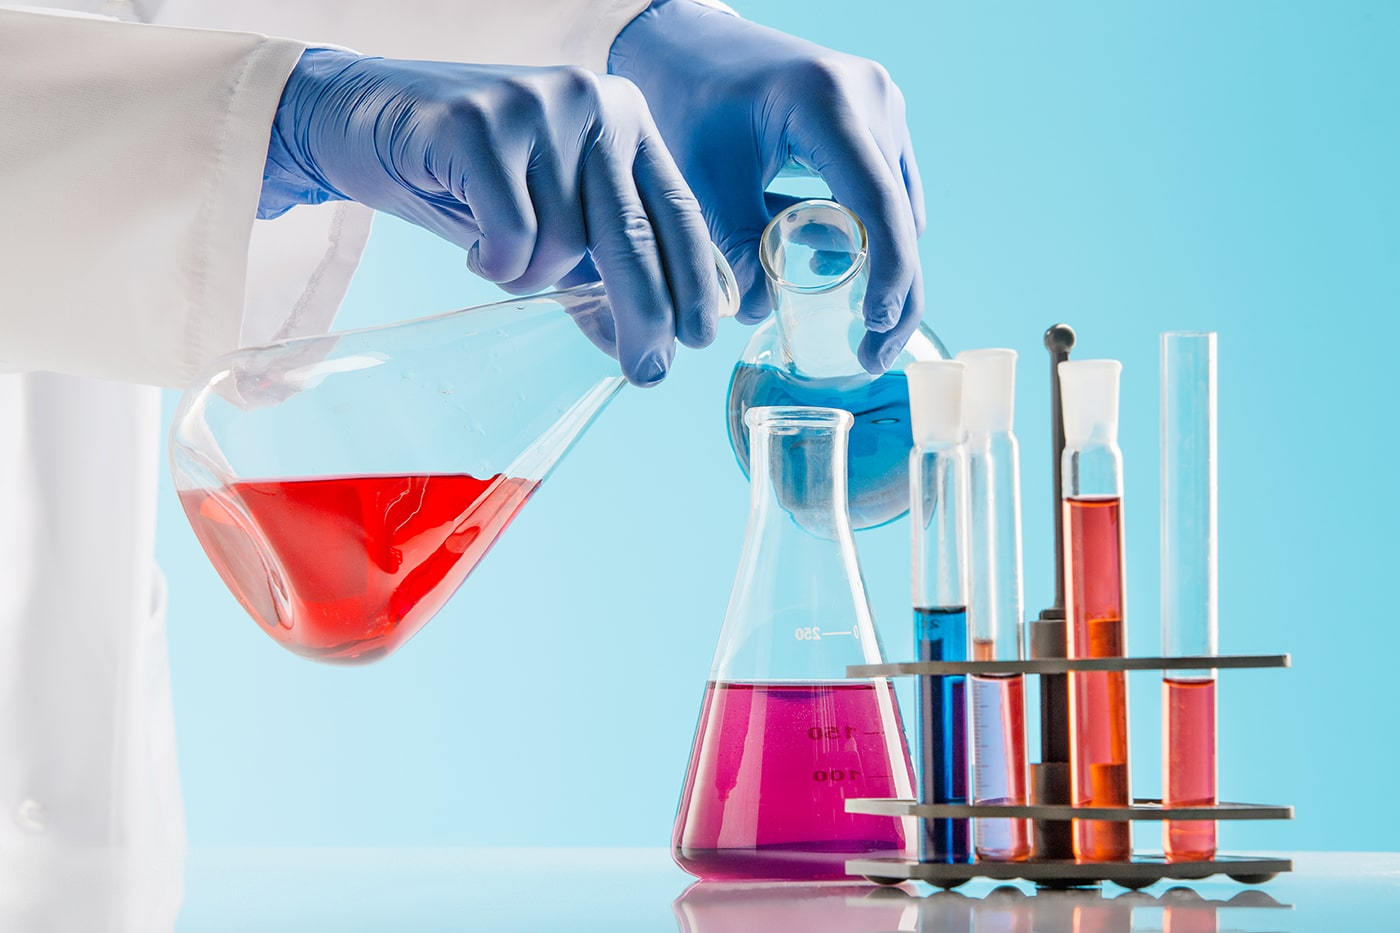 experiments-in-a-chemistry-lab-conducting-an-P6H2MMS-min.jpg